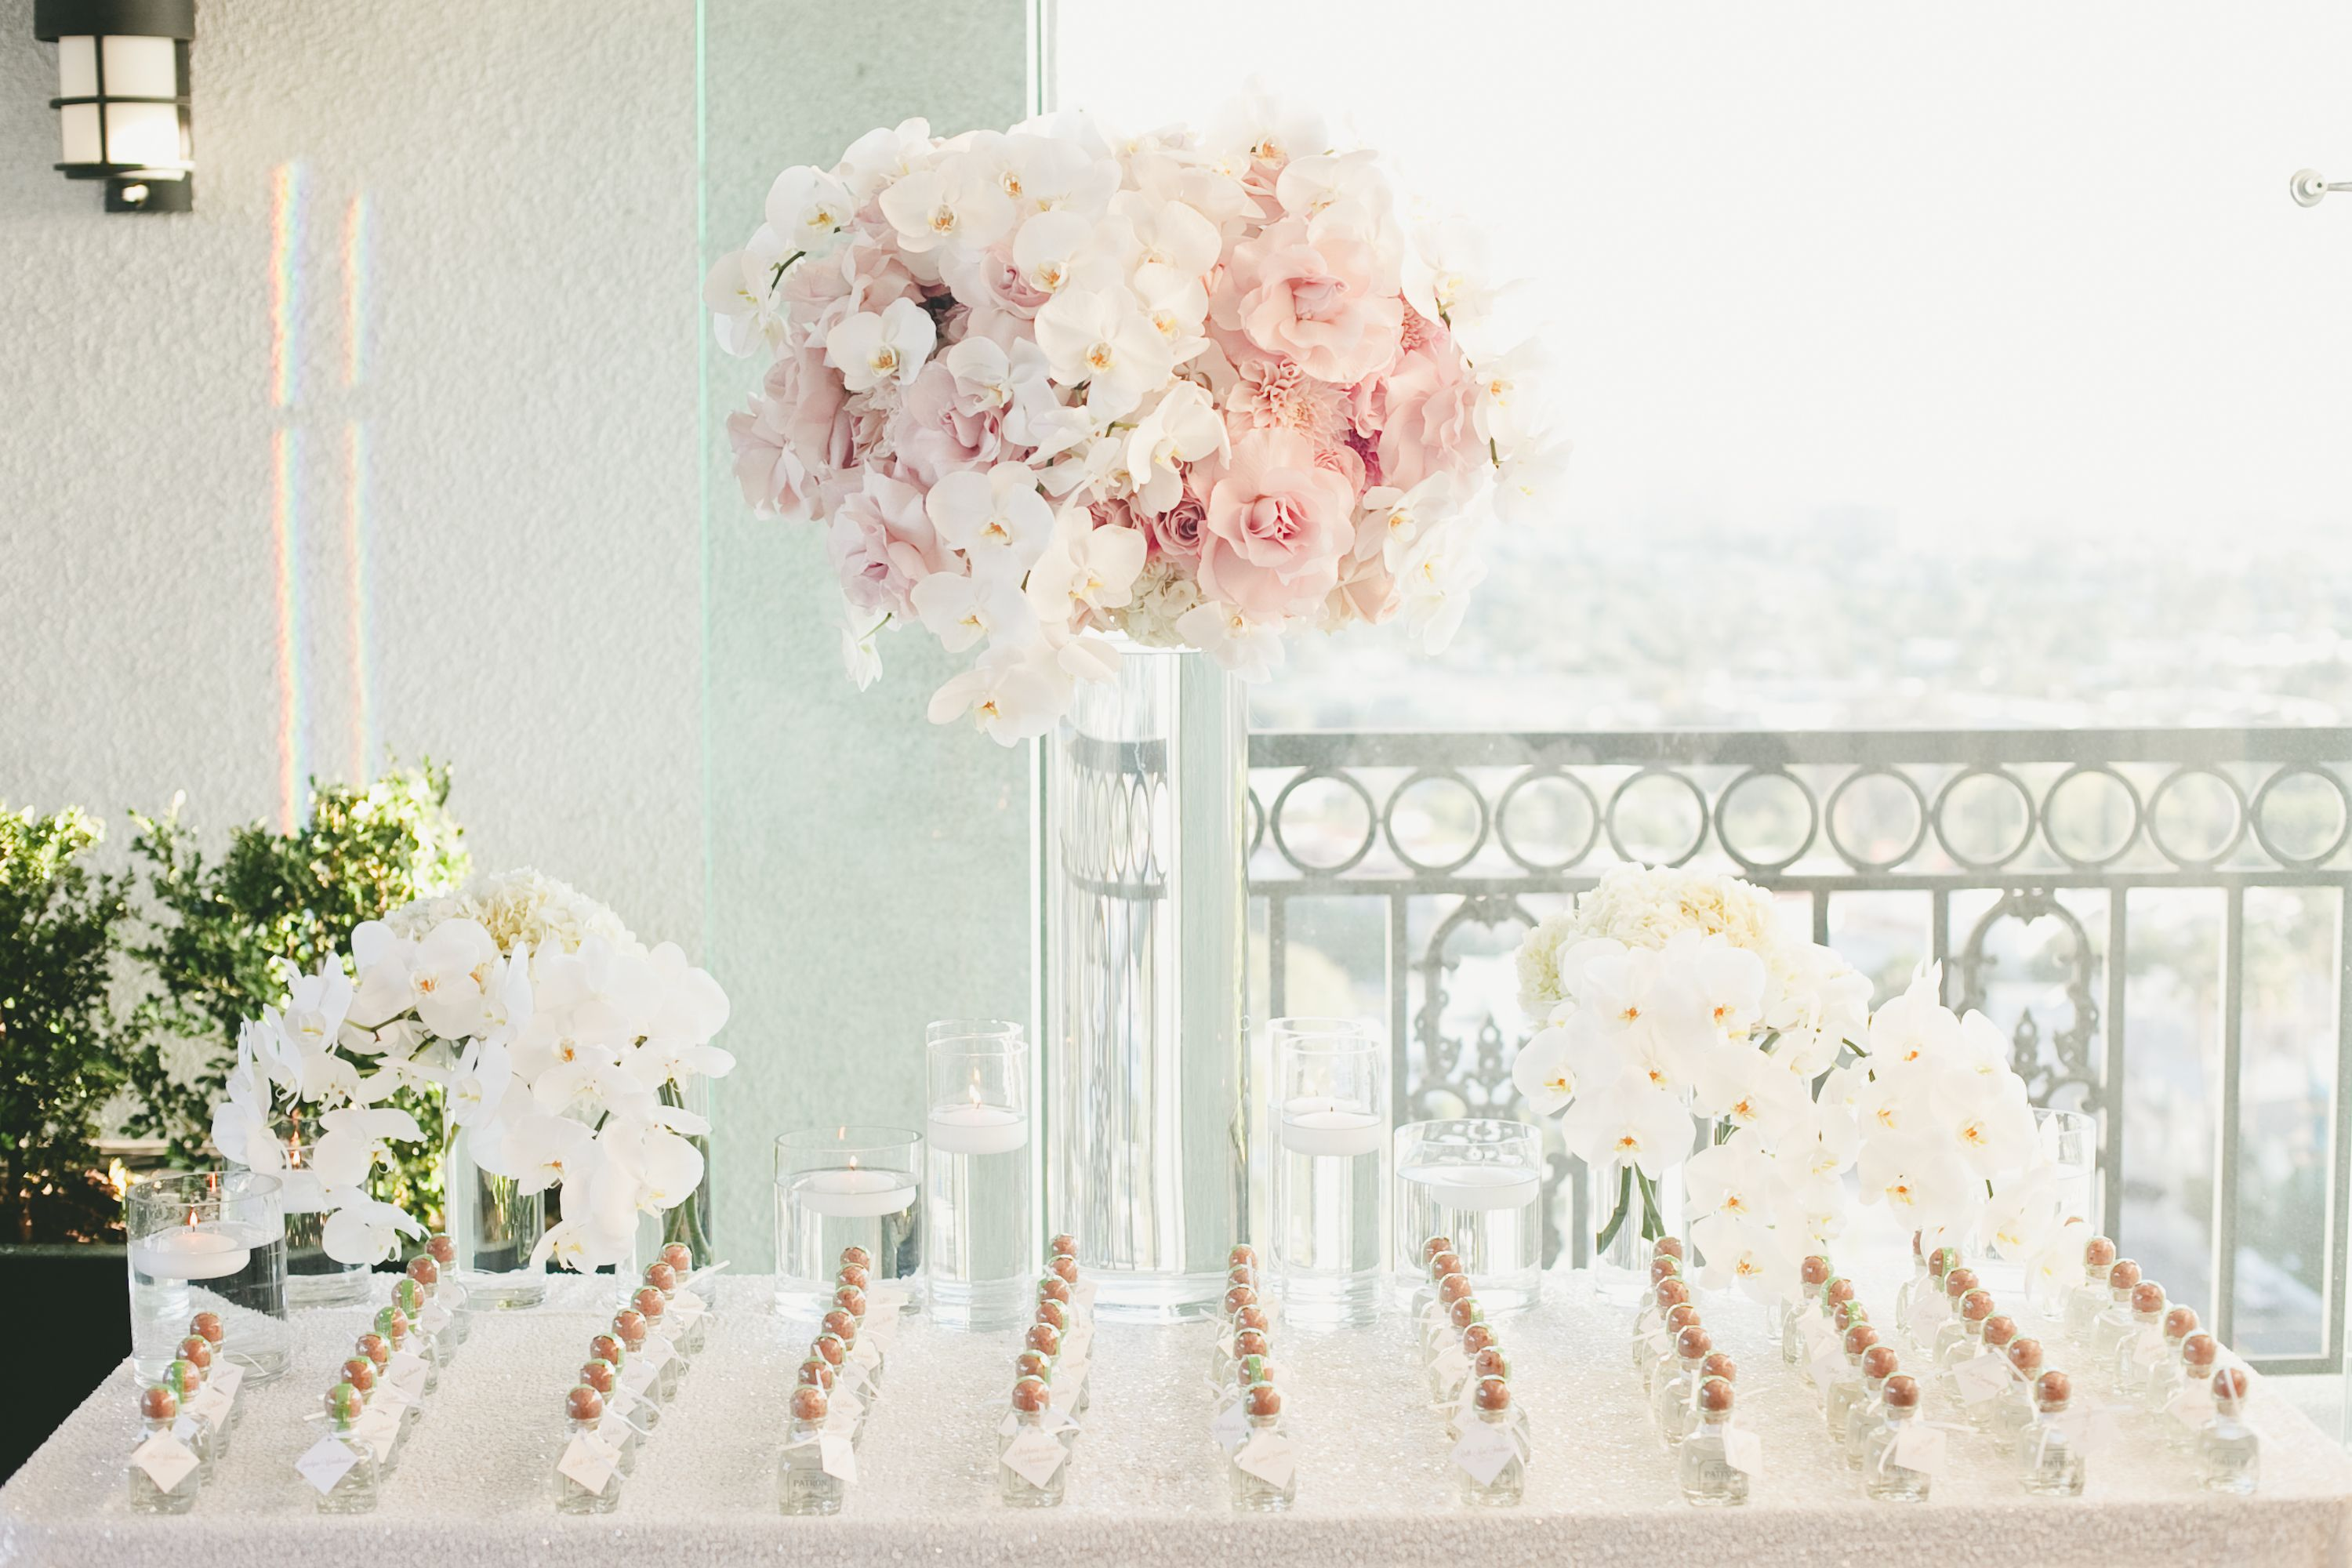 Elegant Orchid Favor Display | Ideas for Escort Cards, guest books ...